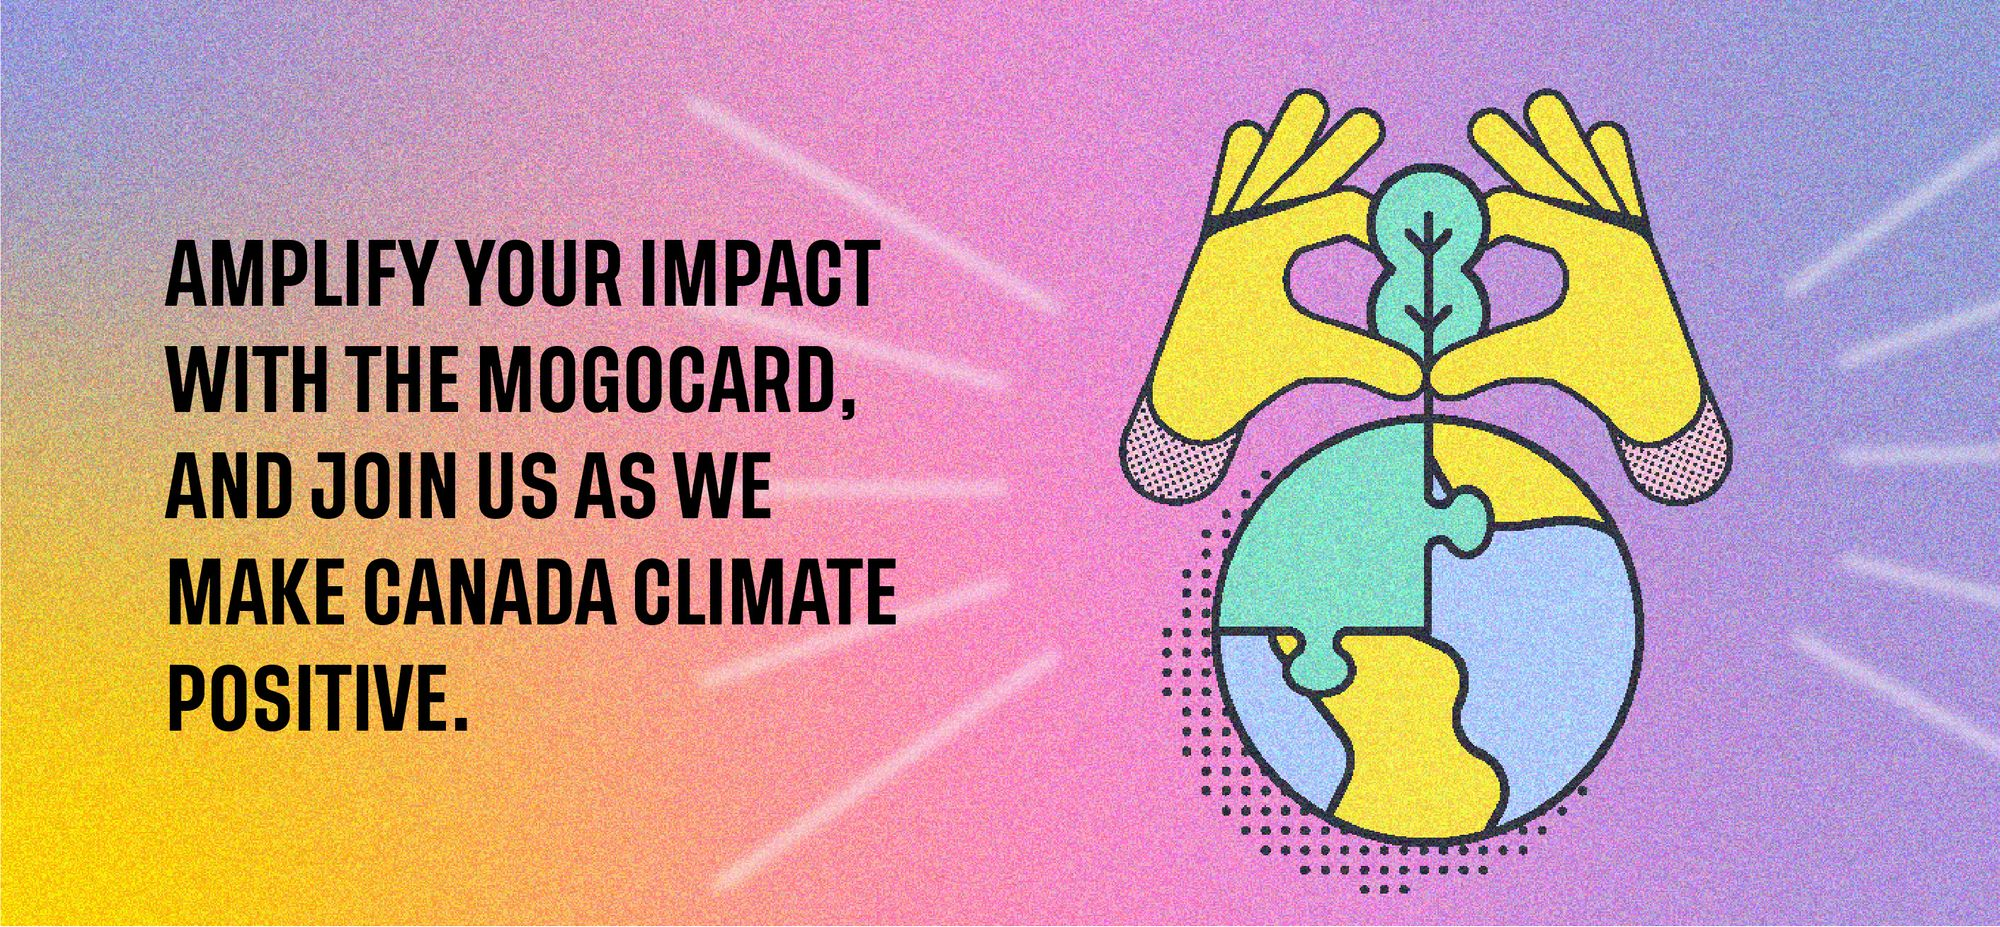 Amplify your impact with the MogoCard, and join us as we help make Canada climate positive.